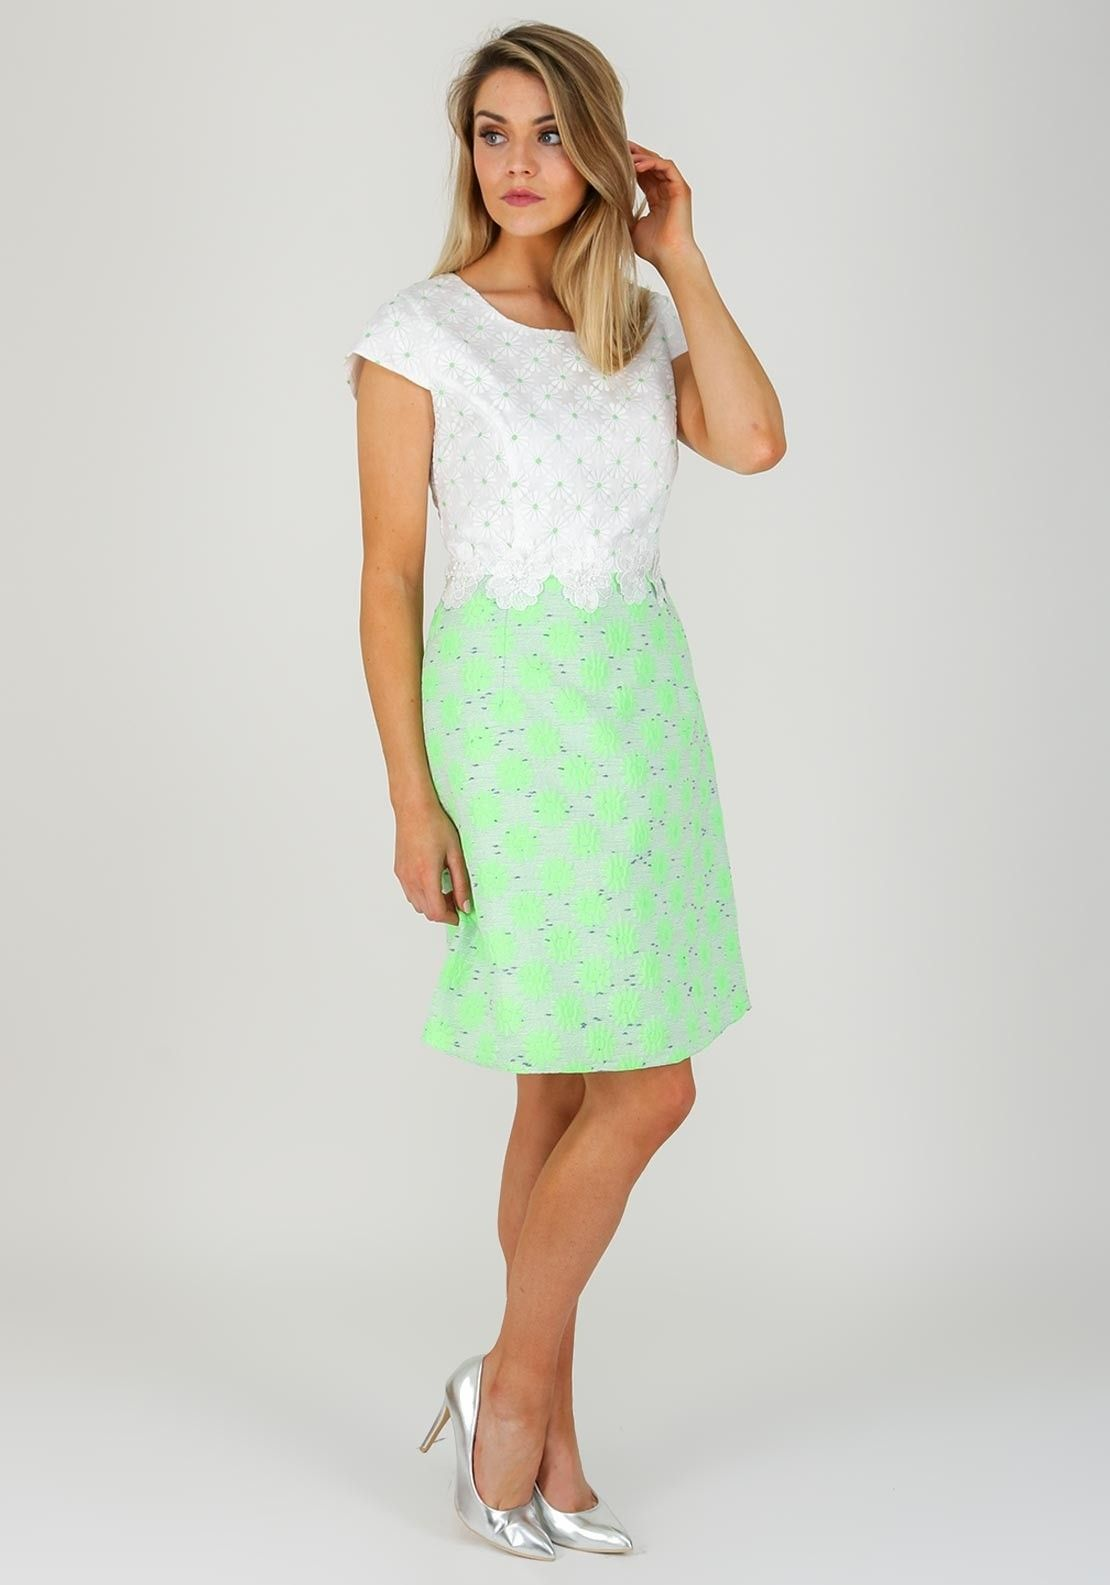 6c0cf990b9a3 Daisy May Daisy Print A-Line Dress, Green & White | Daisy May SS18 ...